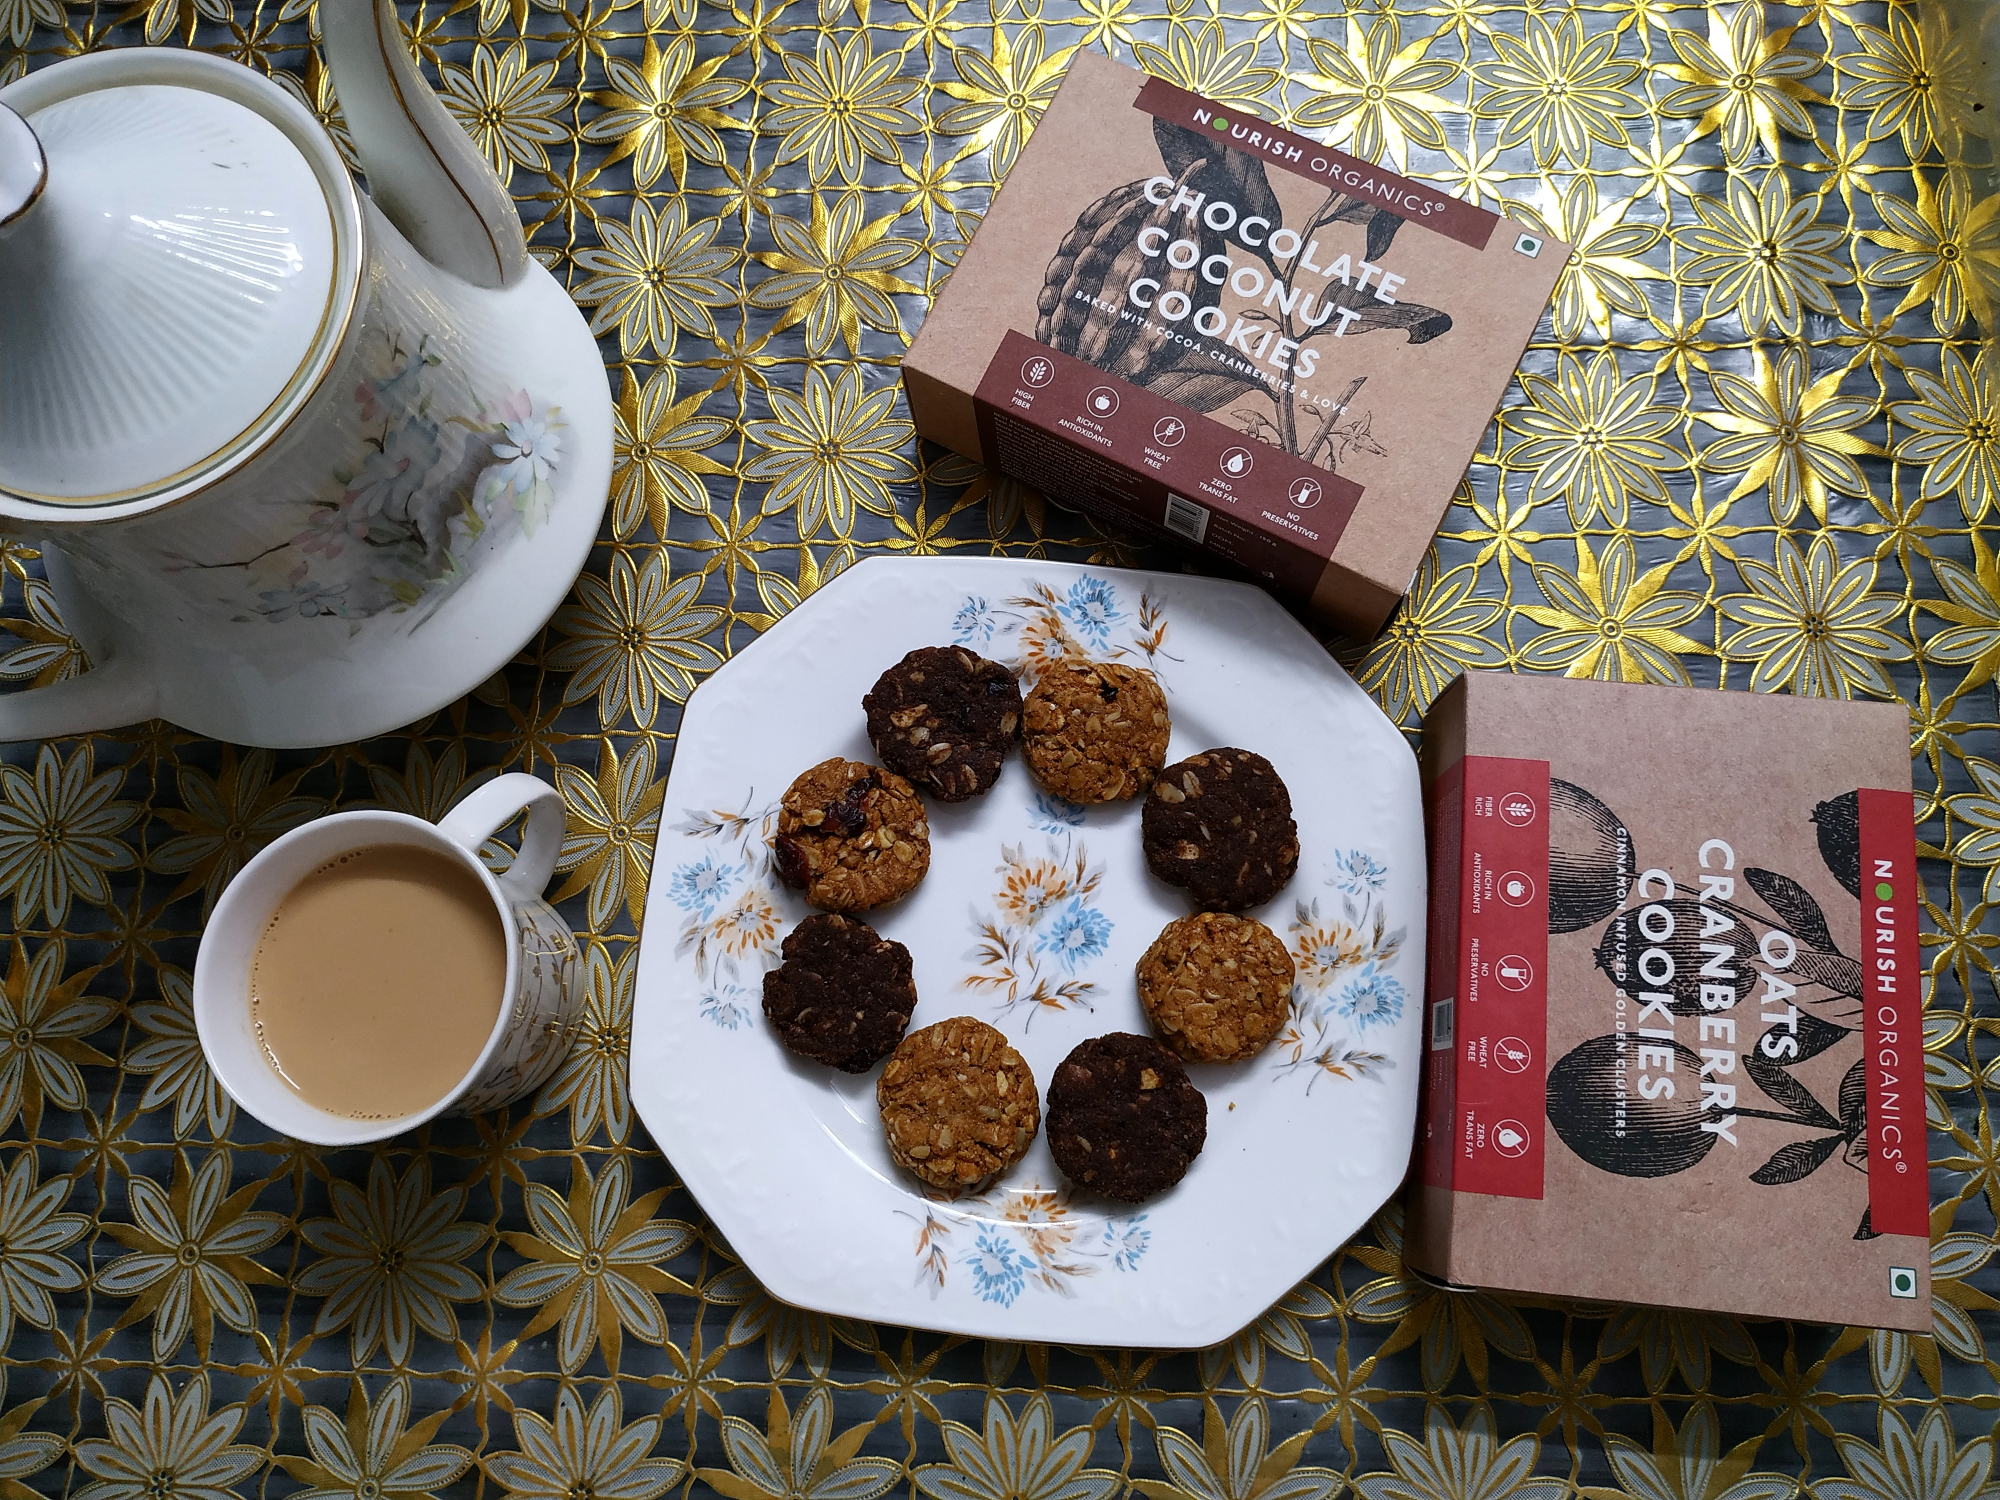 undefined-Guilt free and gluten free cookies from Nourish organics.....